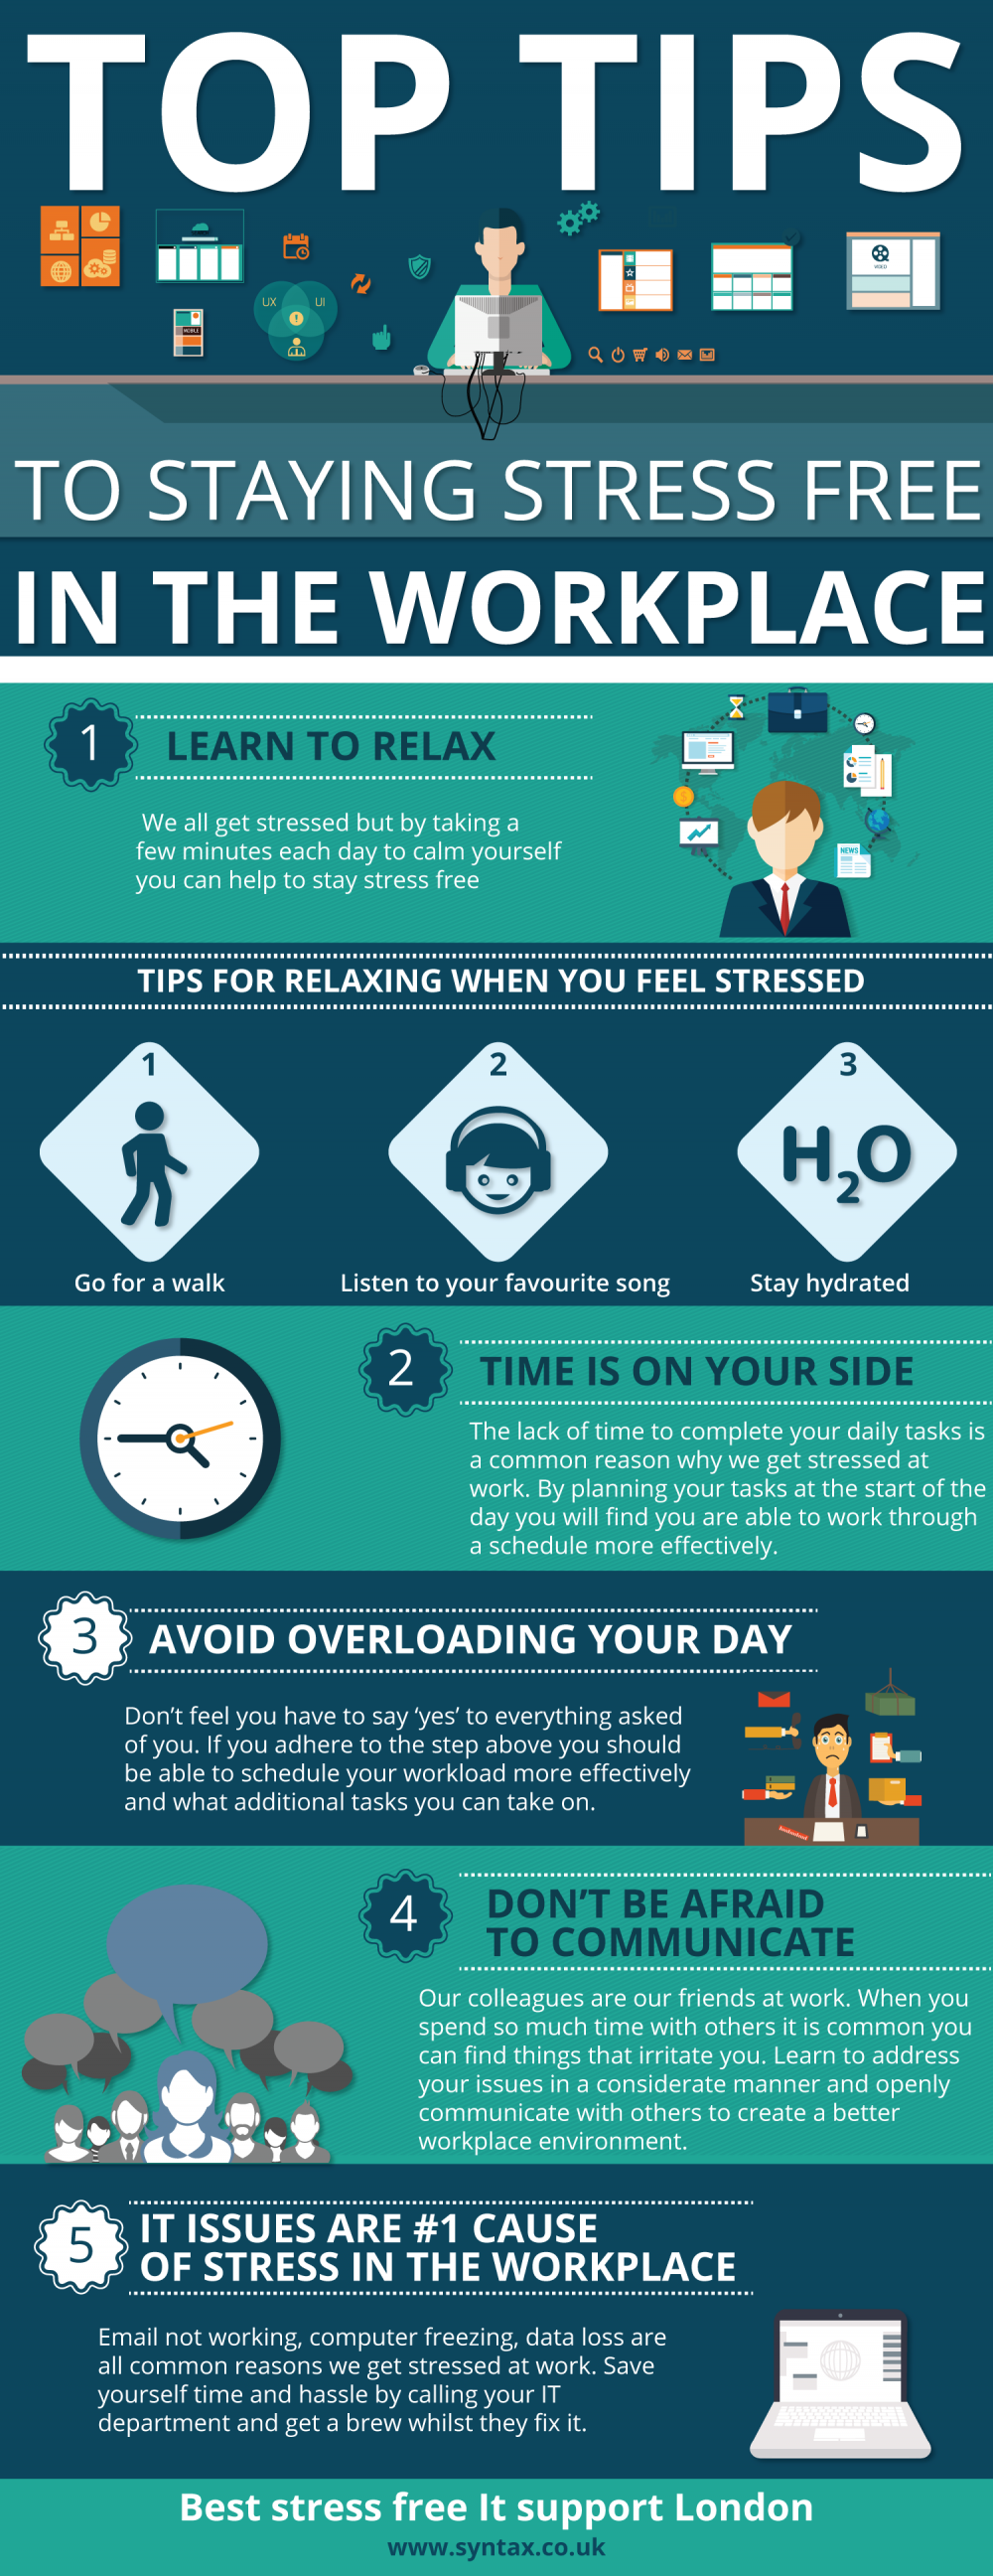 Staying Stress Free In The Workplace Cma